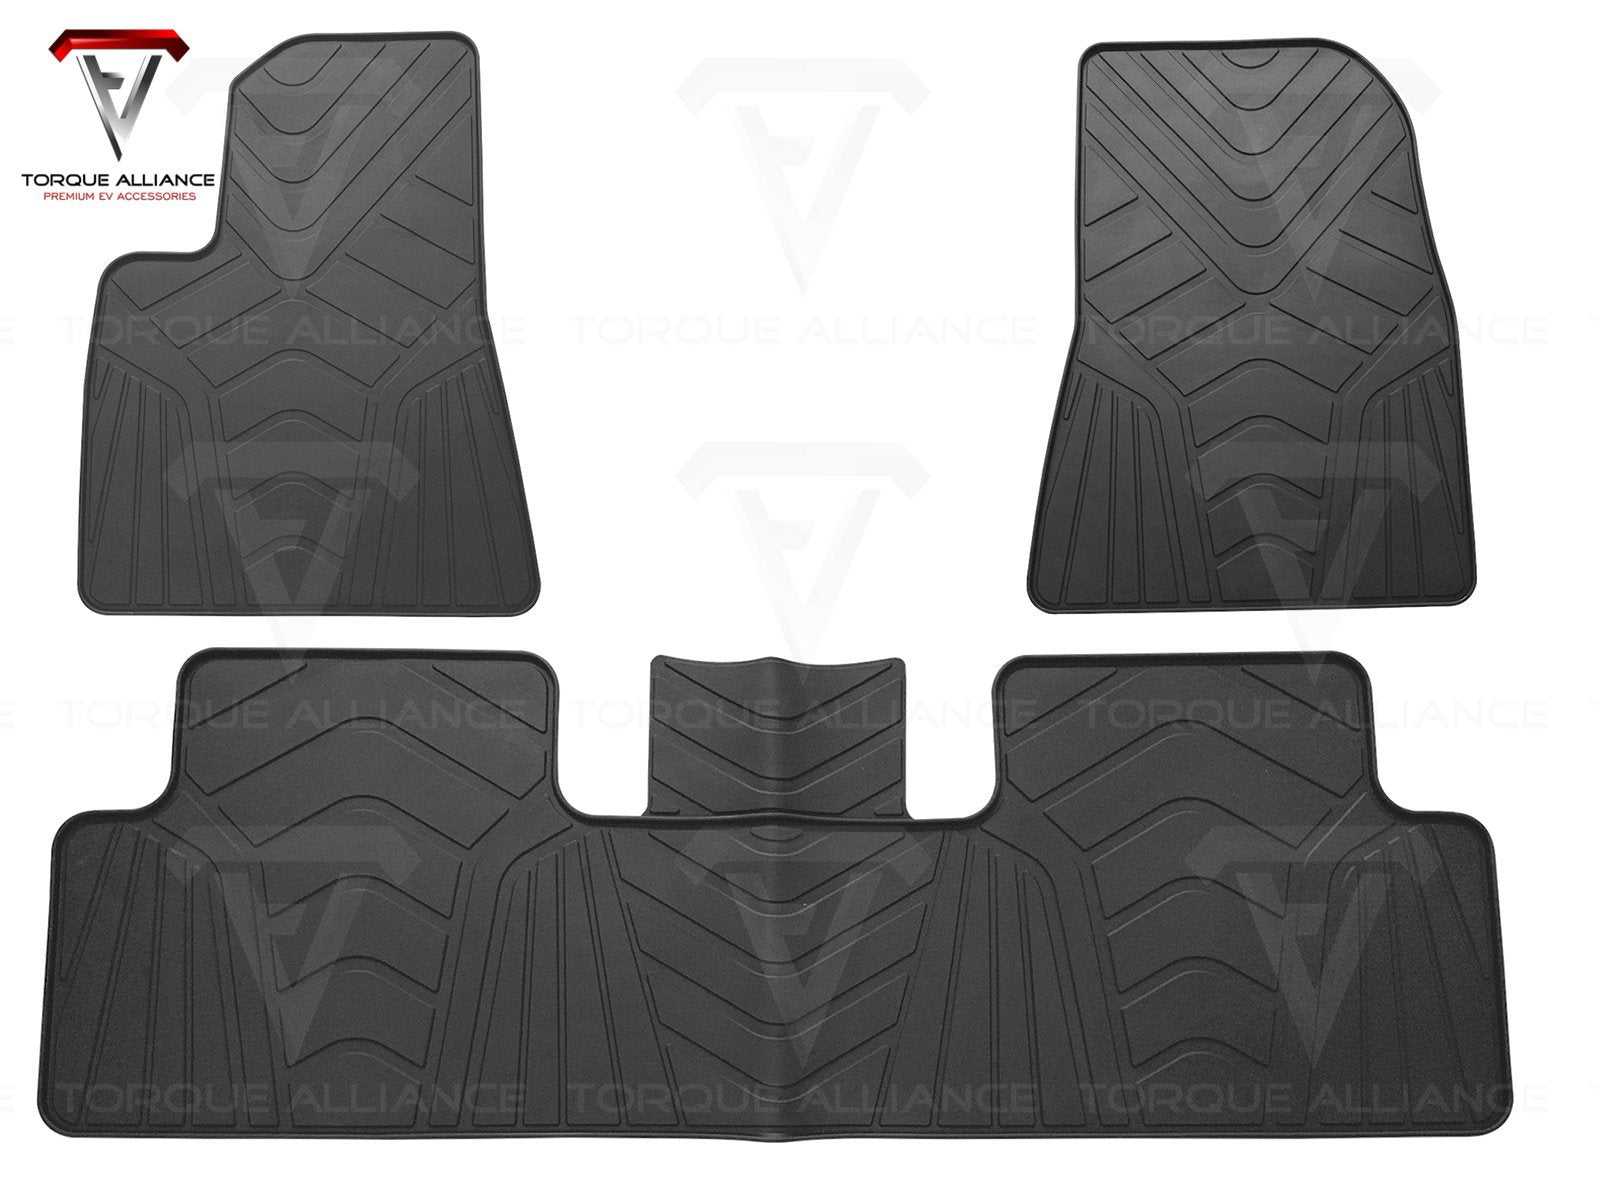 Model 3: All-weather Interior Floor Mats (3 pcs, Synthetic Latex Rubber) - Torque Alliance